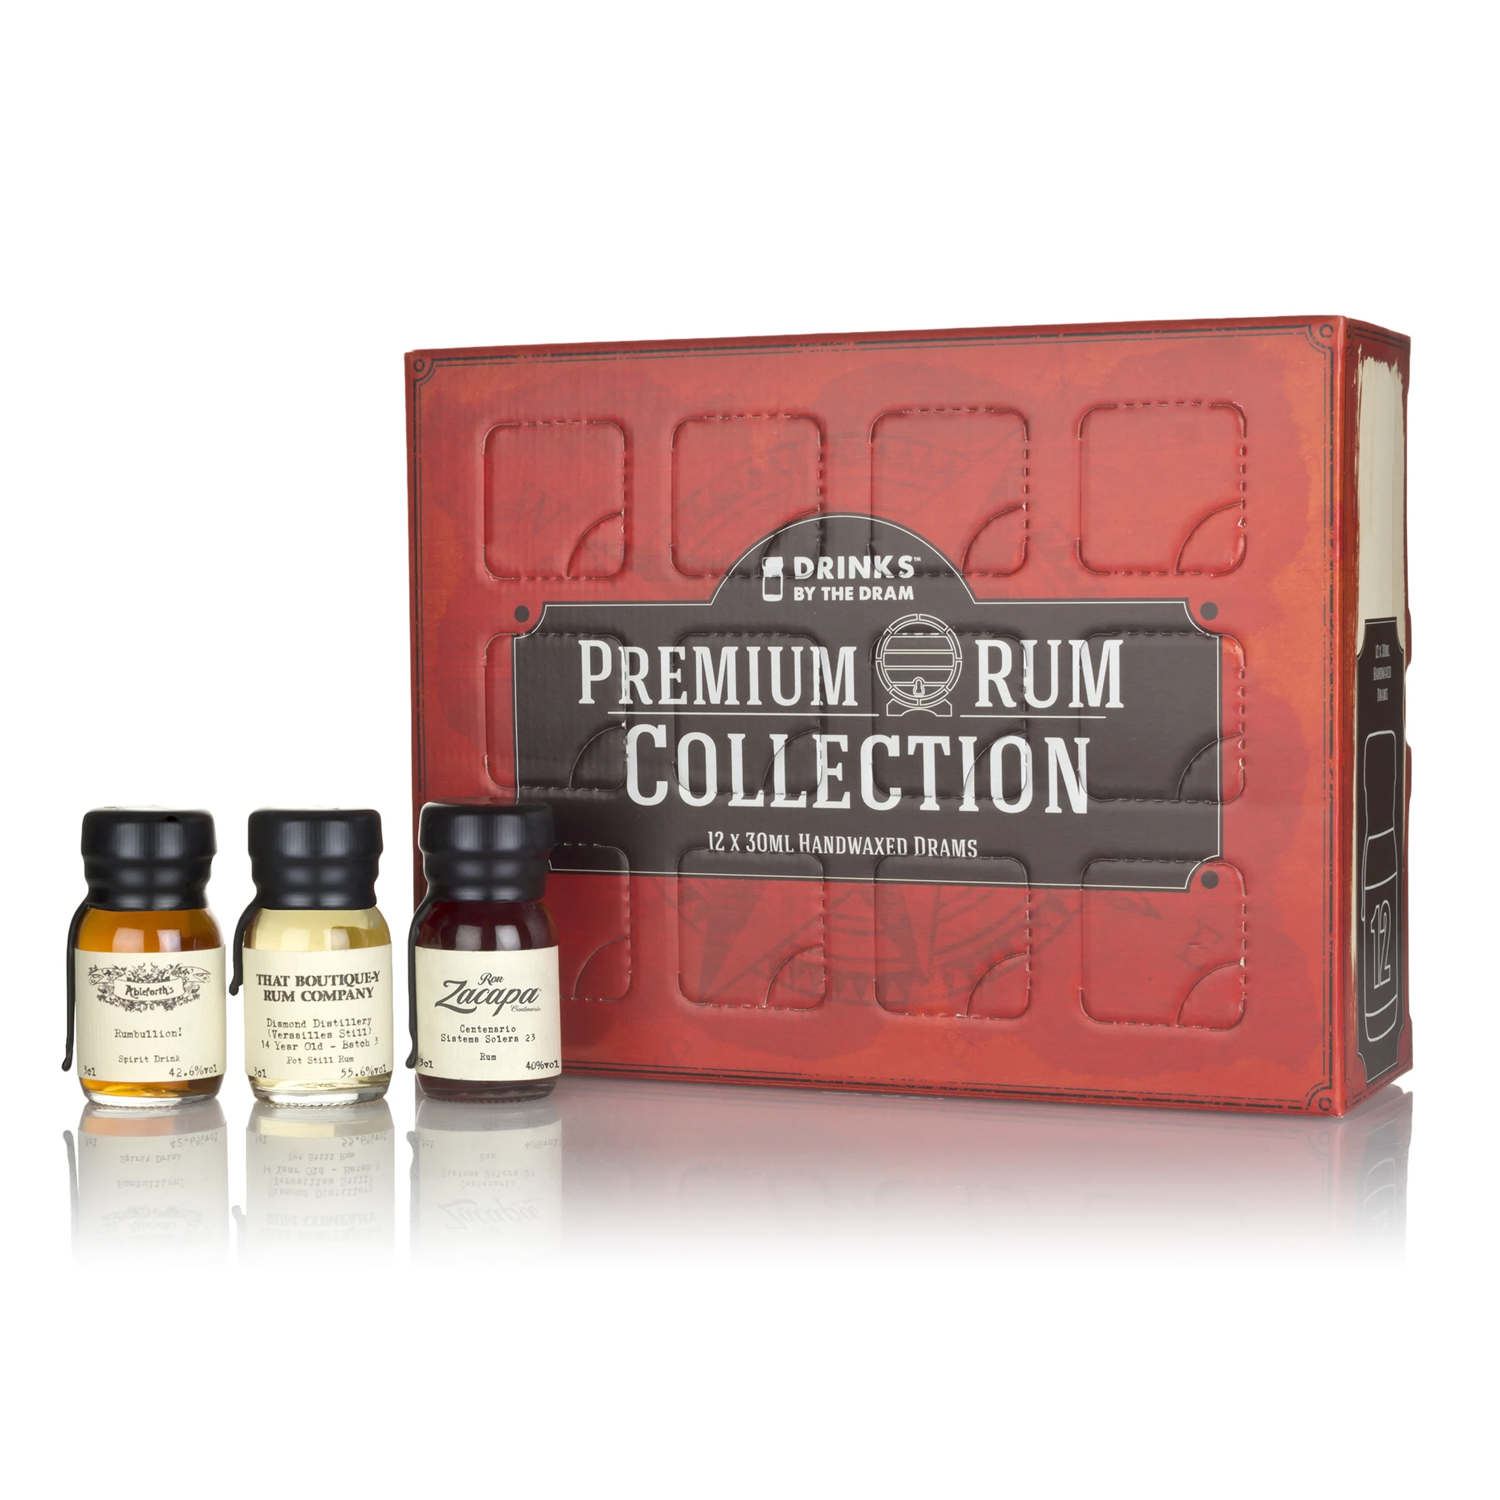 Rhum - Coffret Rhum Premium Collection 12x3cl - 41,9°